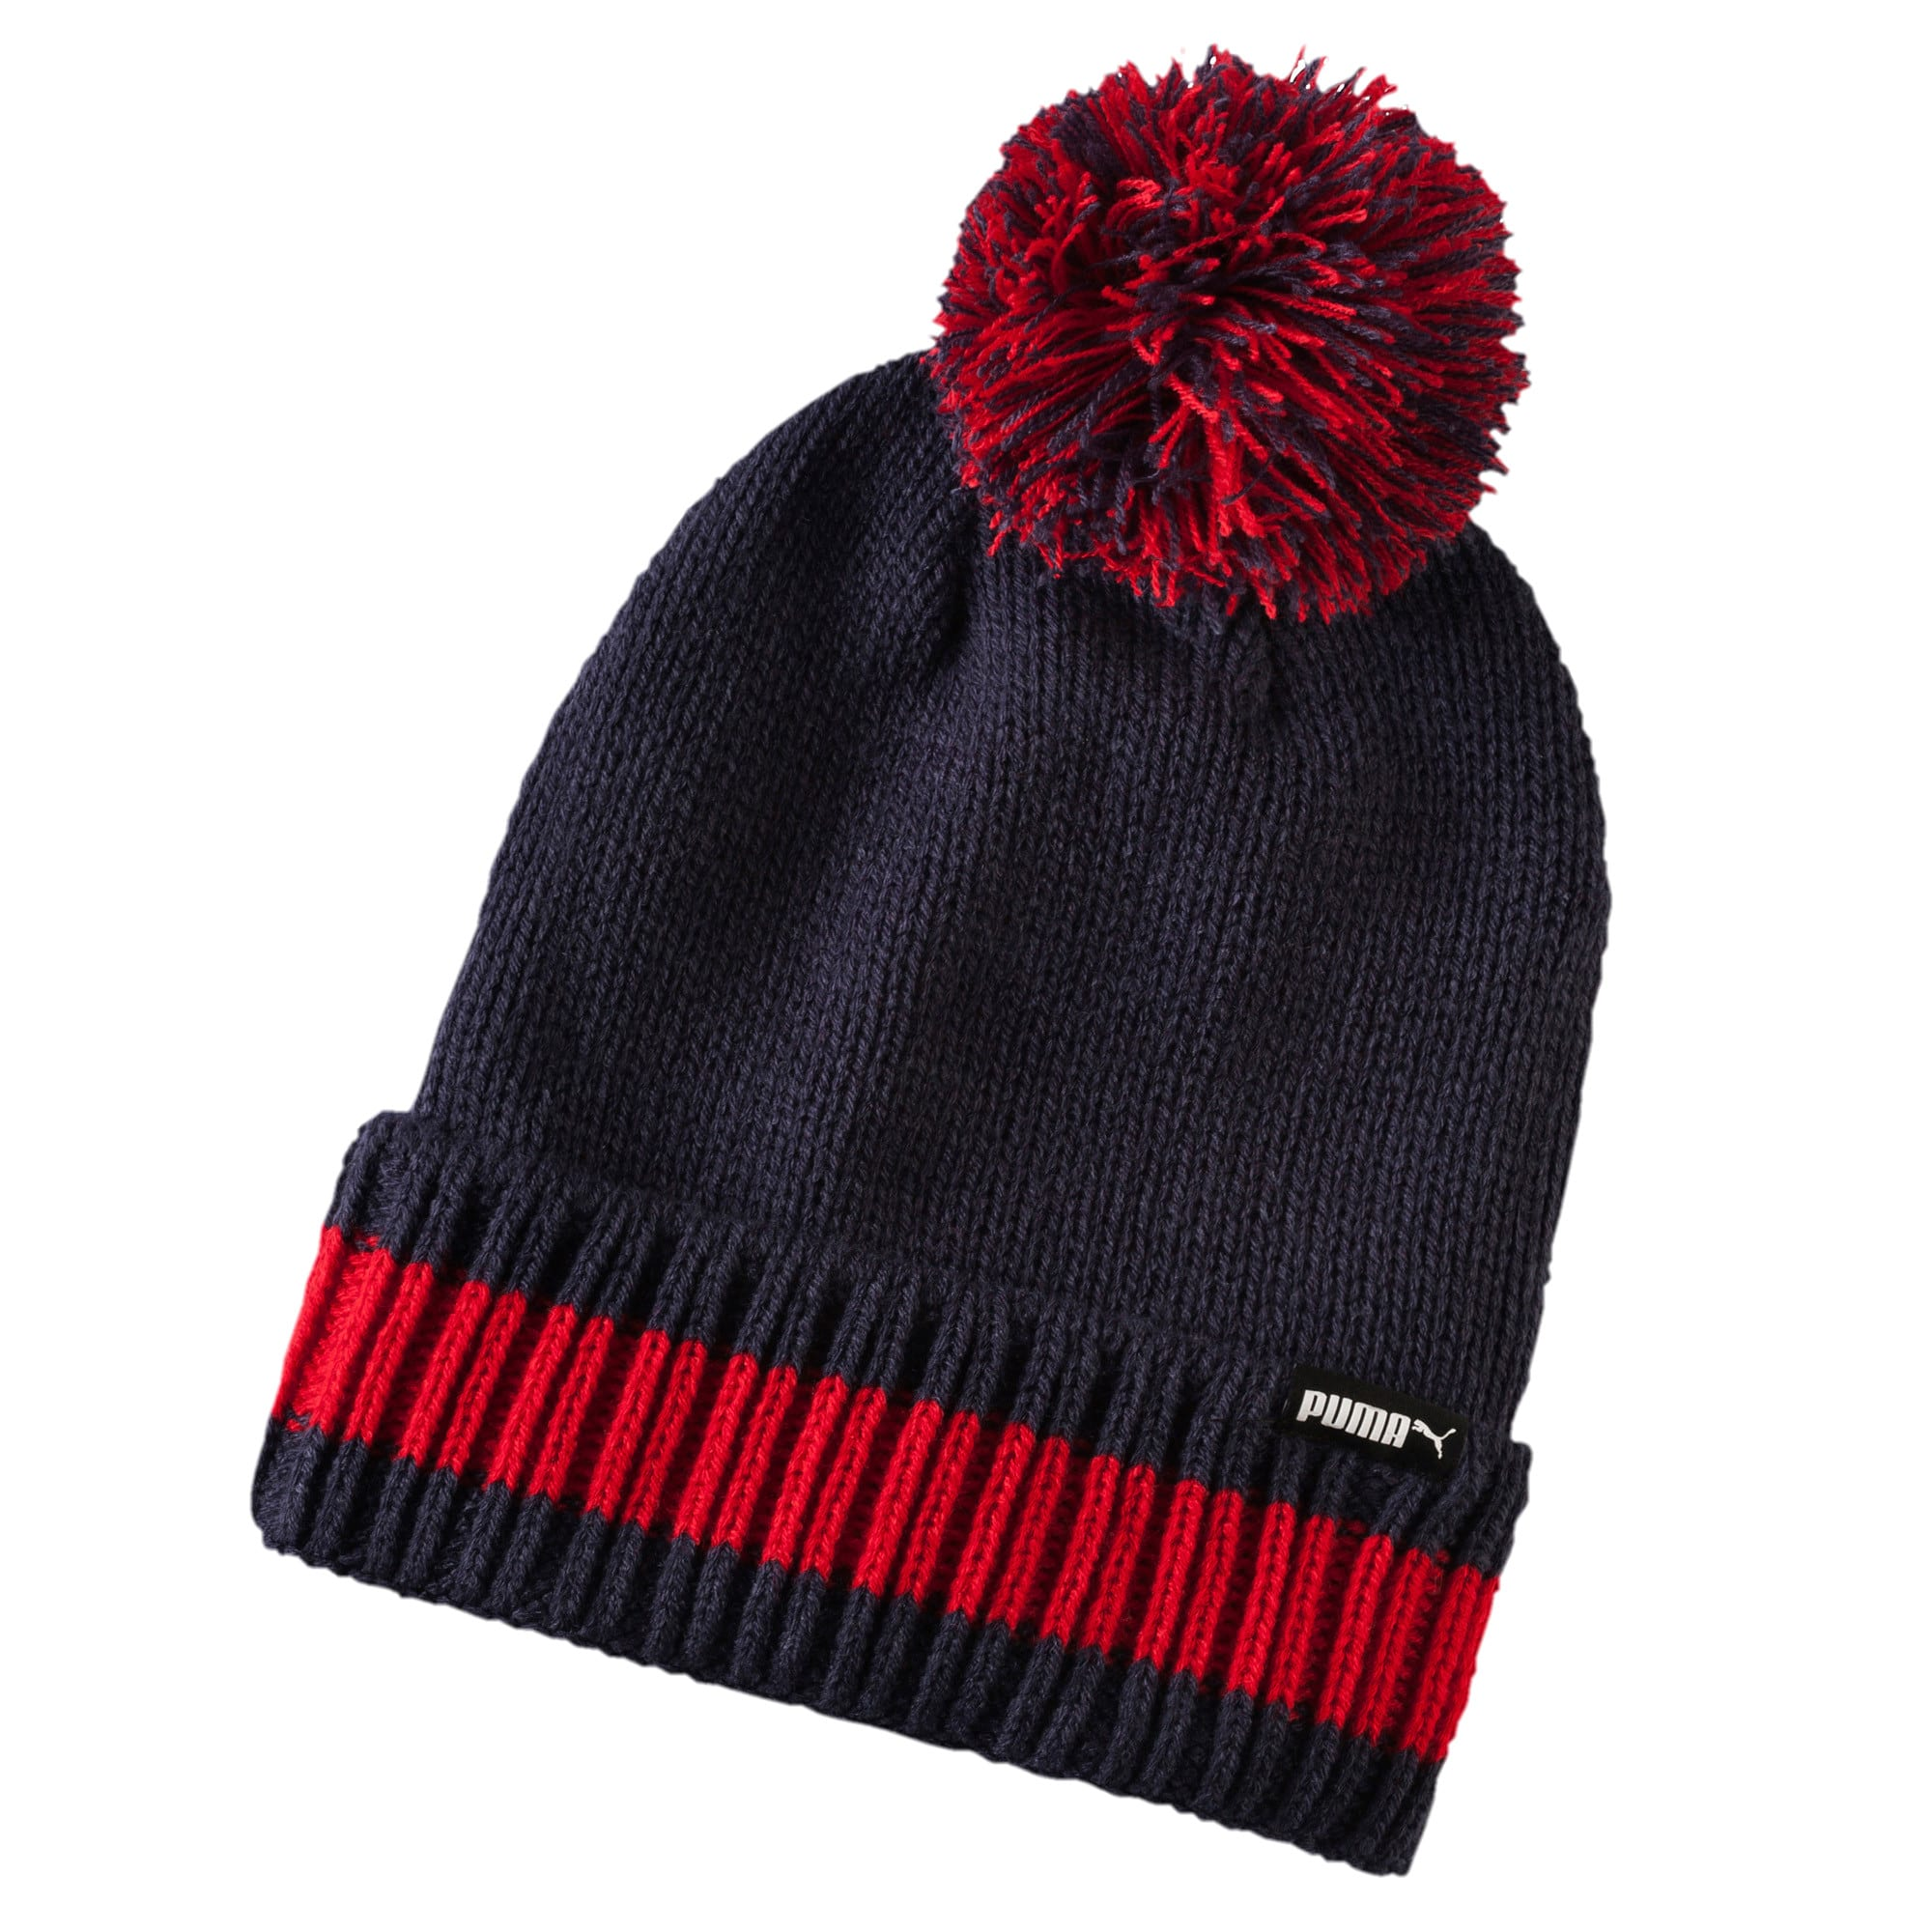 Thumbnail 2 of LS Phoenix Knit hat, Peacoat-Barbados Cherry, medium-IND